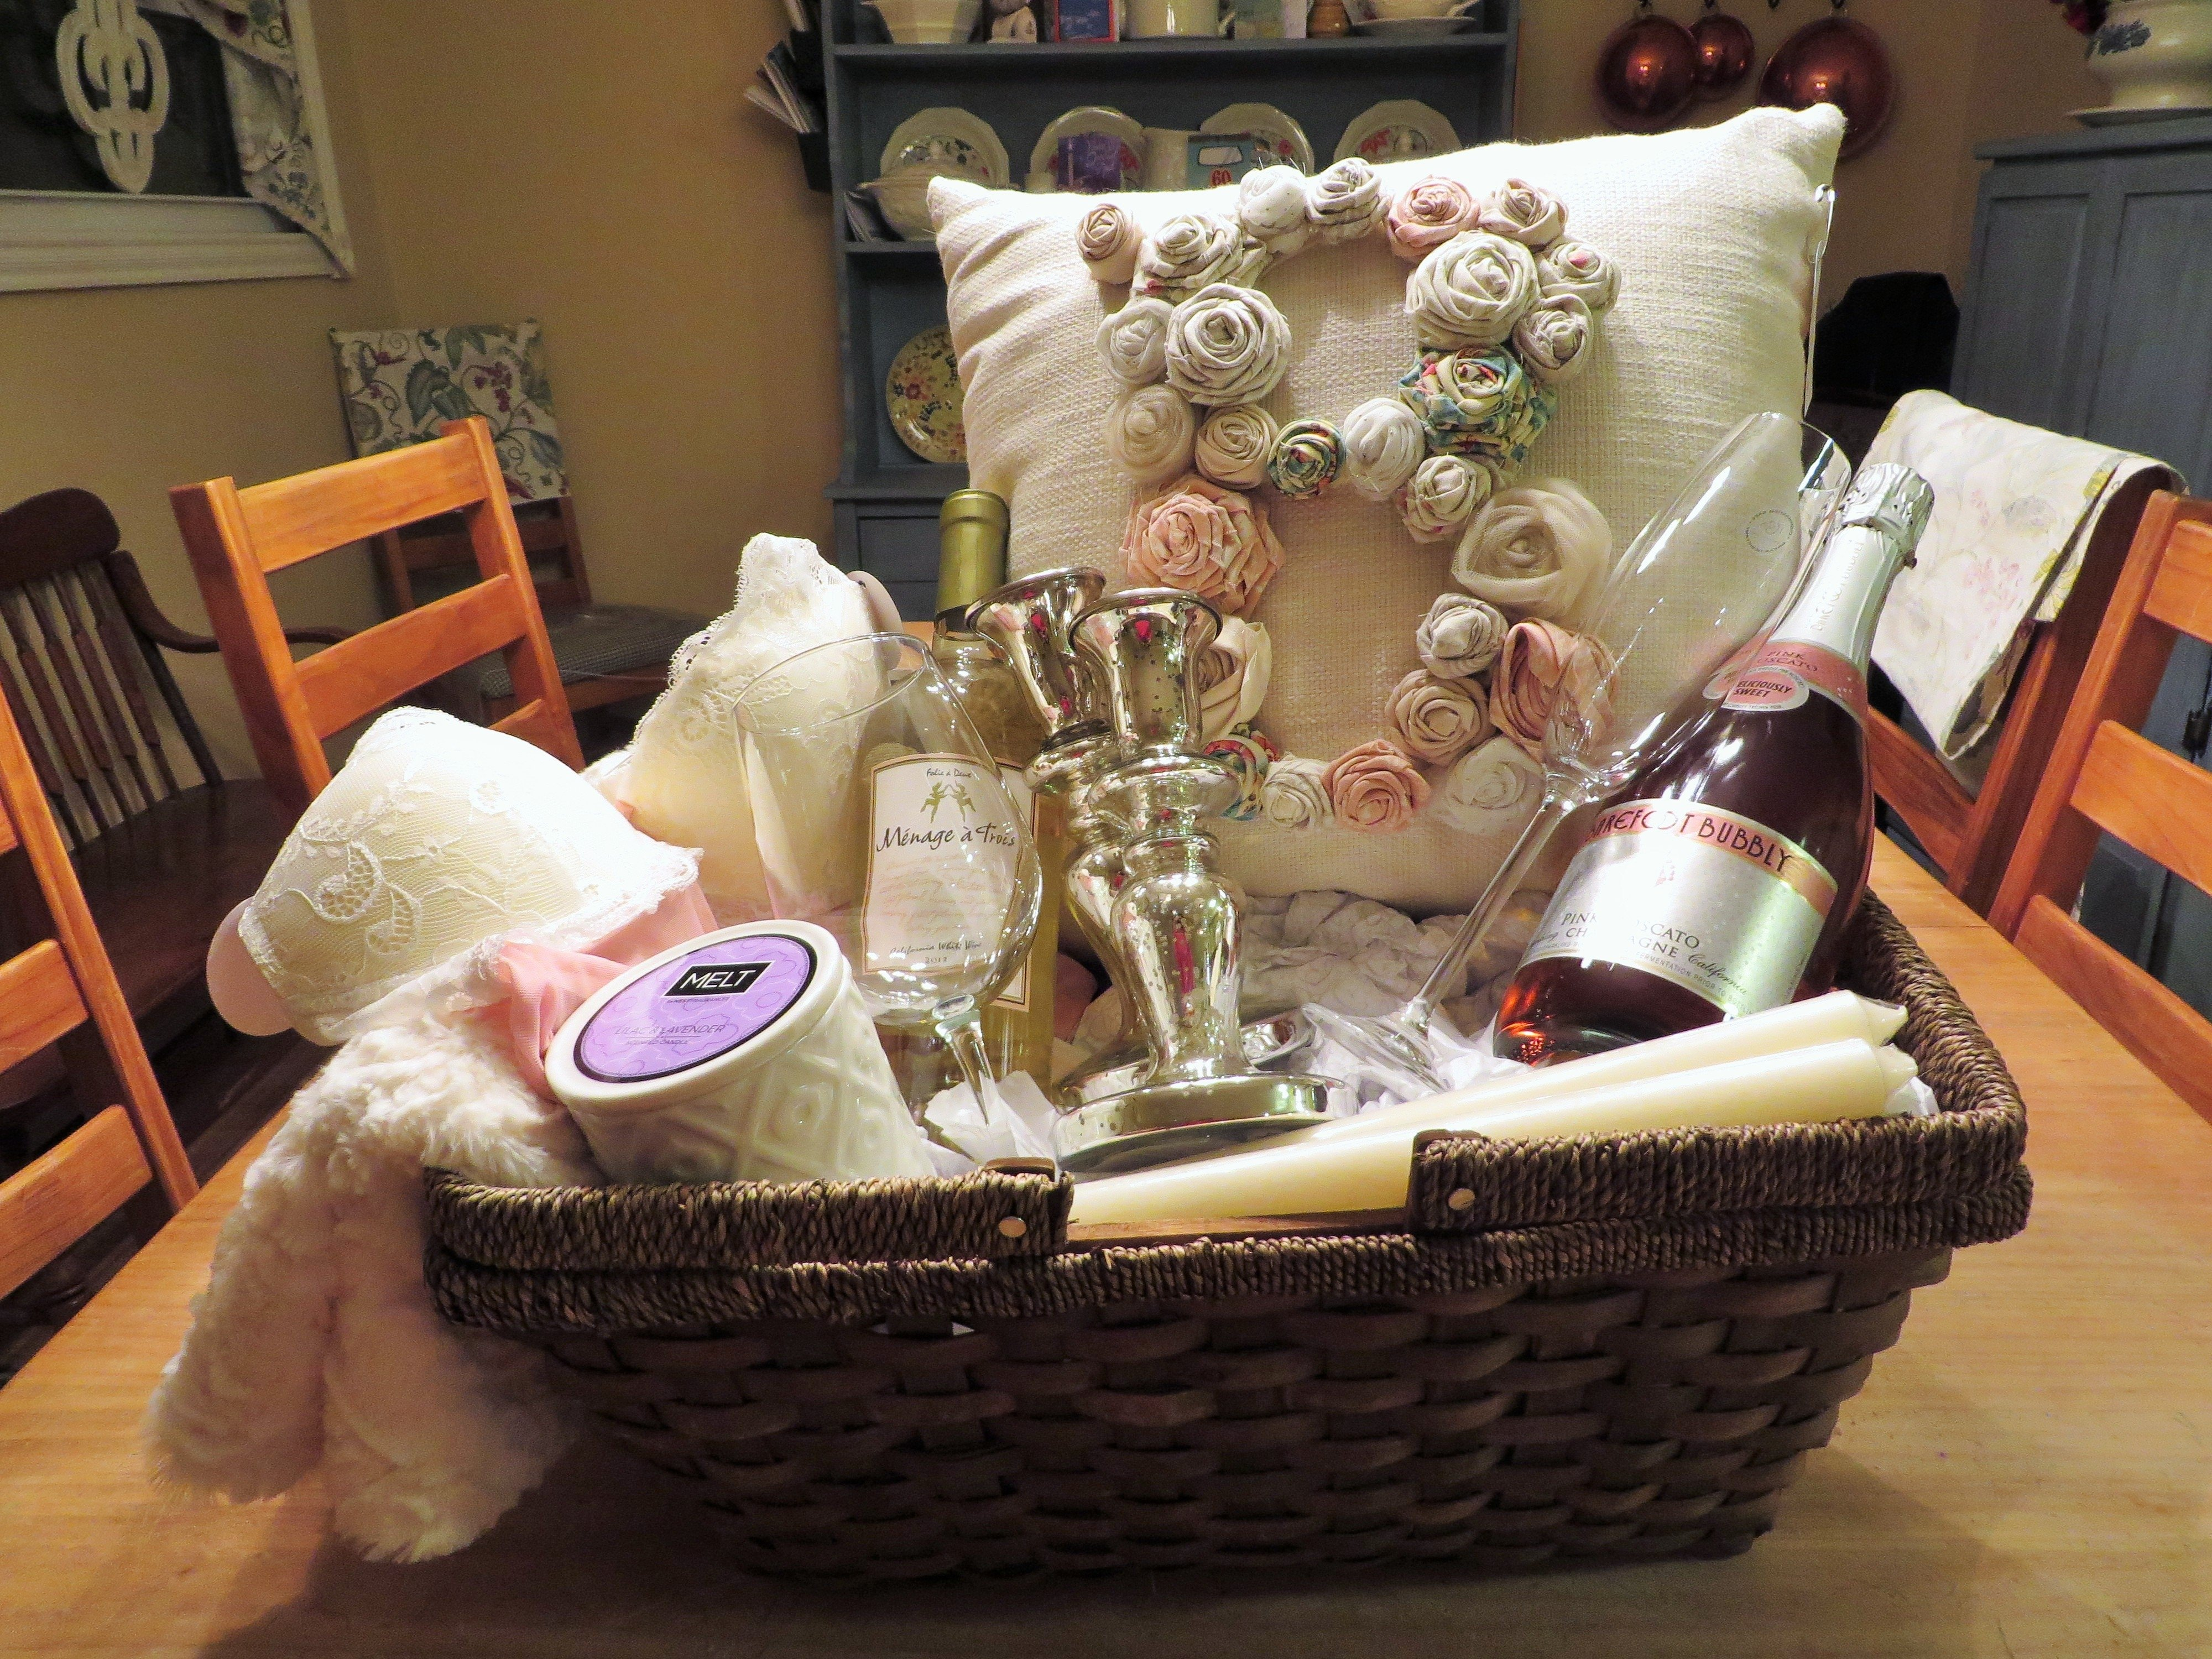 10 Most Recommended Ideas For A Bridal Shower Gift creative gift ideas for wedding shower unique bridal shower t basket